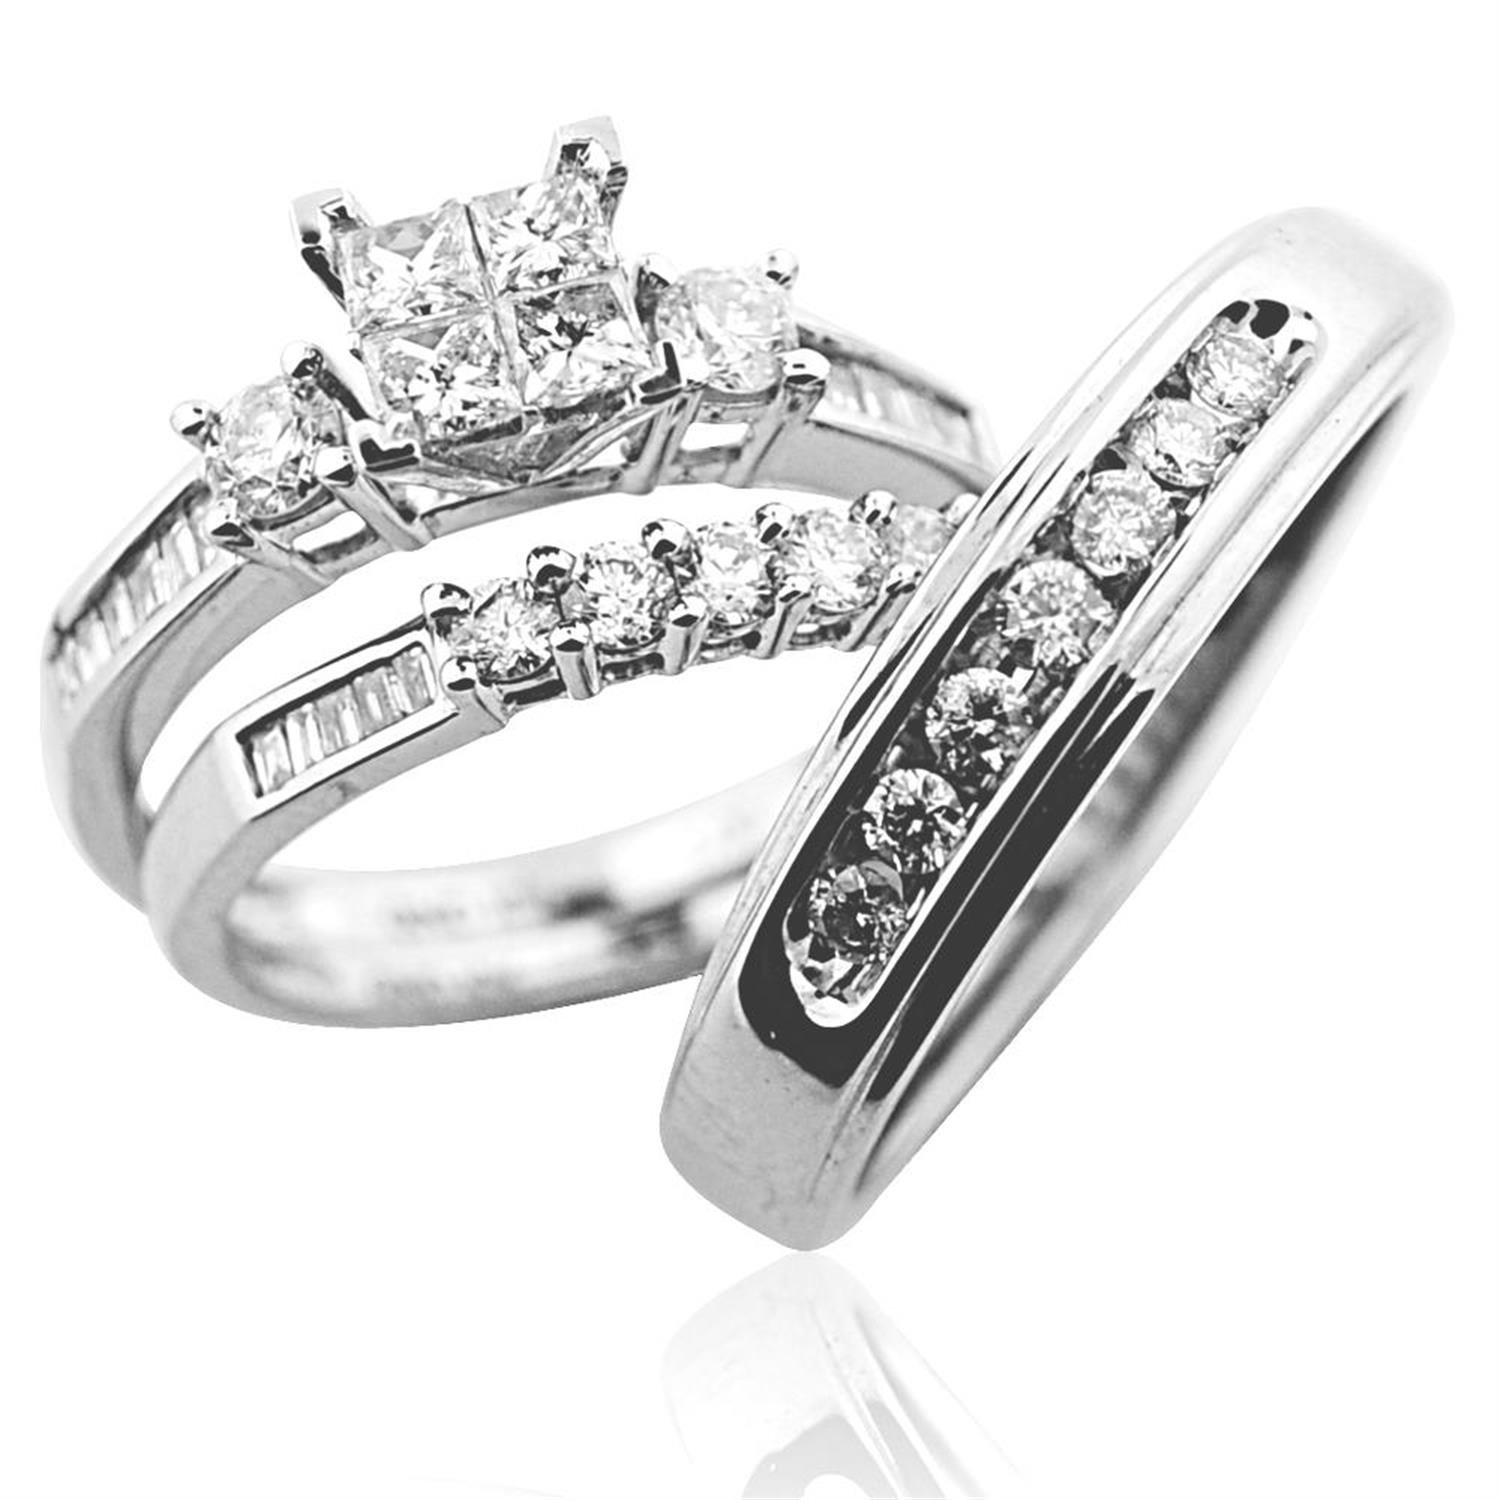 Diamond Wedding Rings.Midwest Jewellery Trio Wedding Ring Set His And Her Rings White Gold Real Diamonds Princess 0 75ct I2 I3 I J